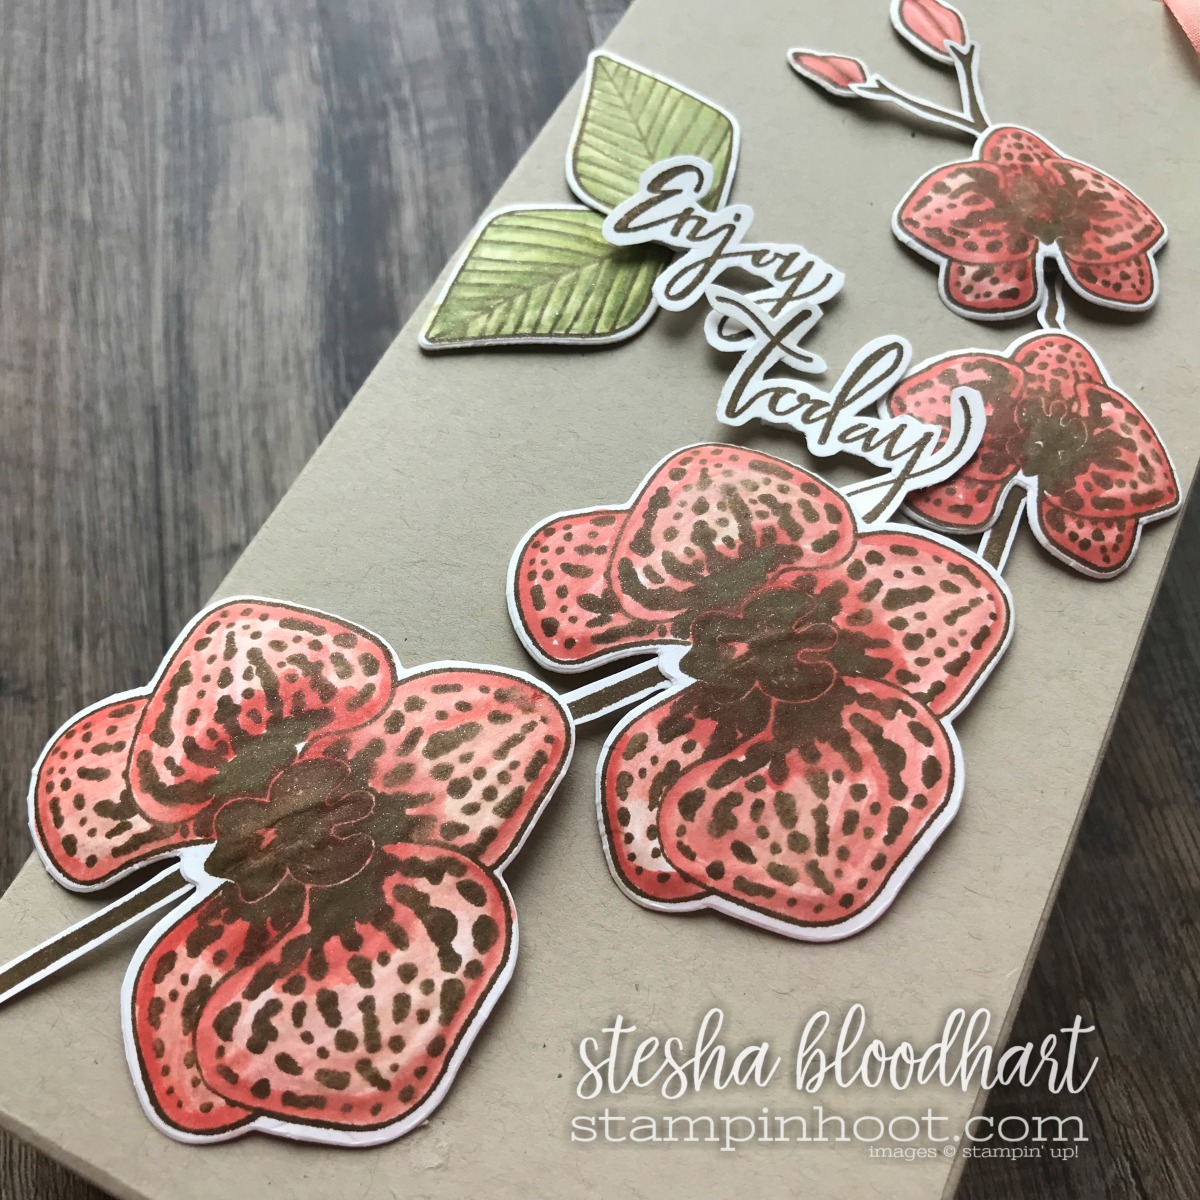 Climbing Orchid Bundle by Stampin' Up! Gift Bag and Card Set Created by Stesha Bloodhart, Stampin' Hoot! For the GDP129 Color Challenge #steshabloodhart #stampinhoot #GDP129